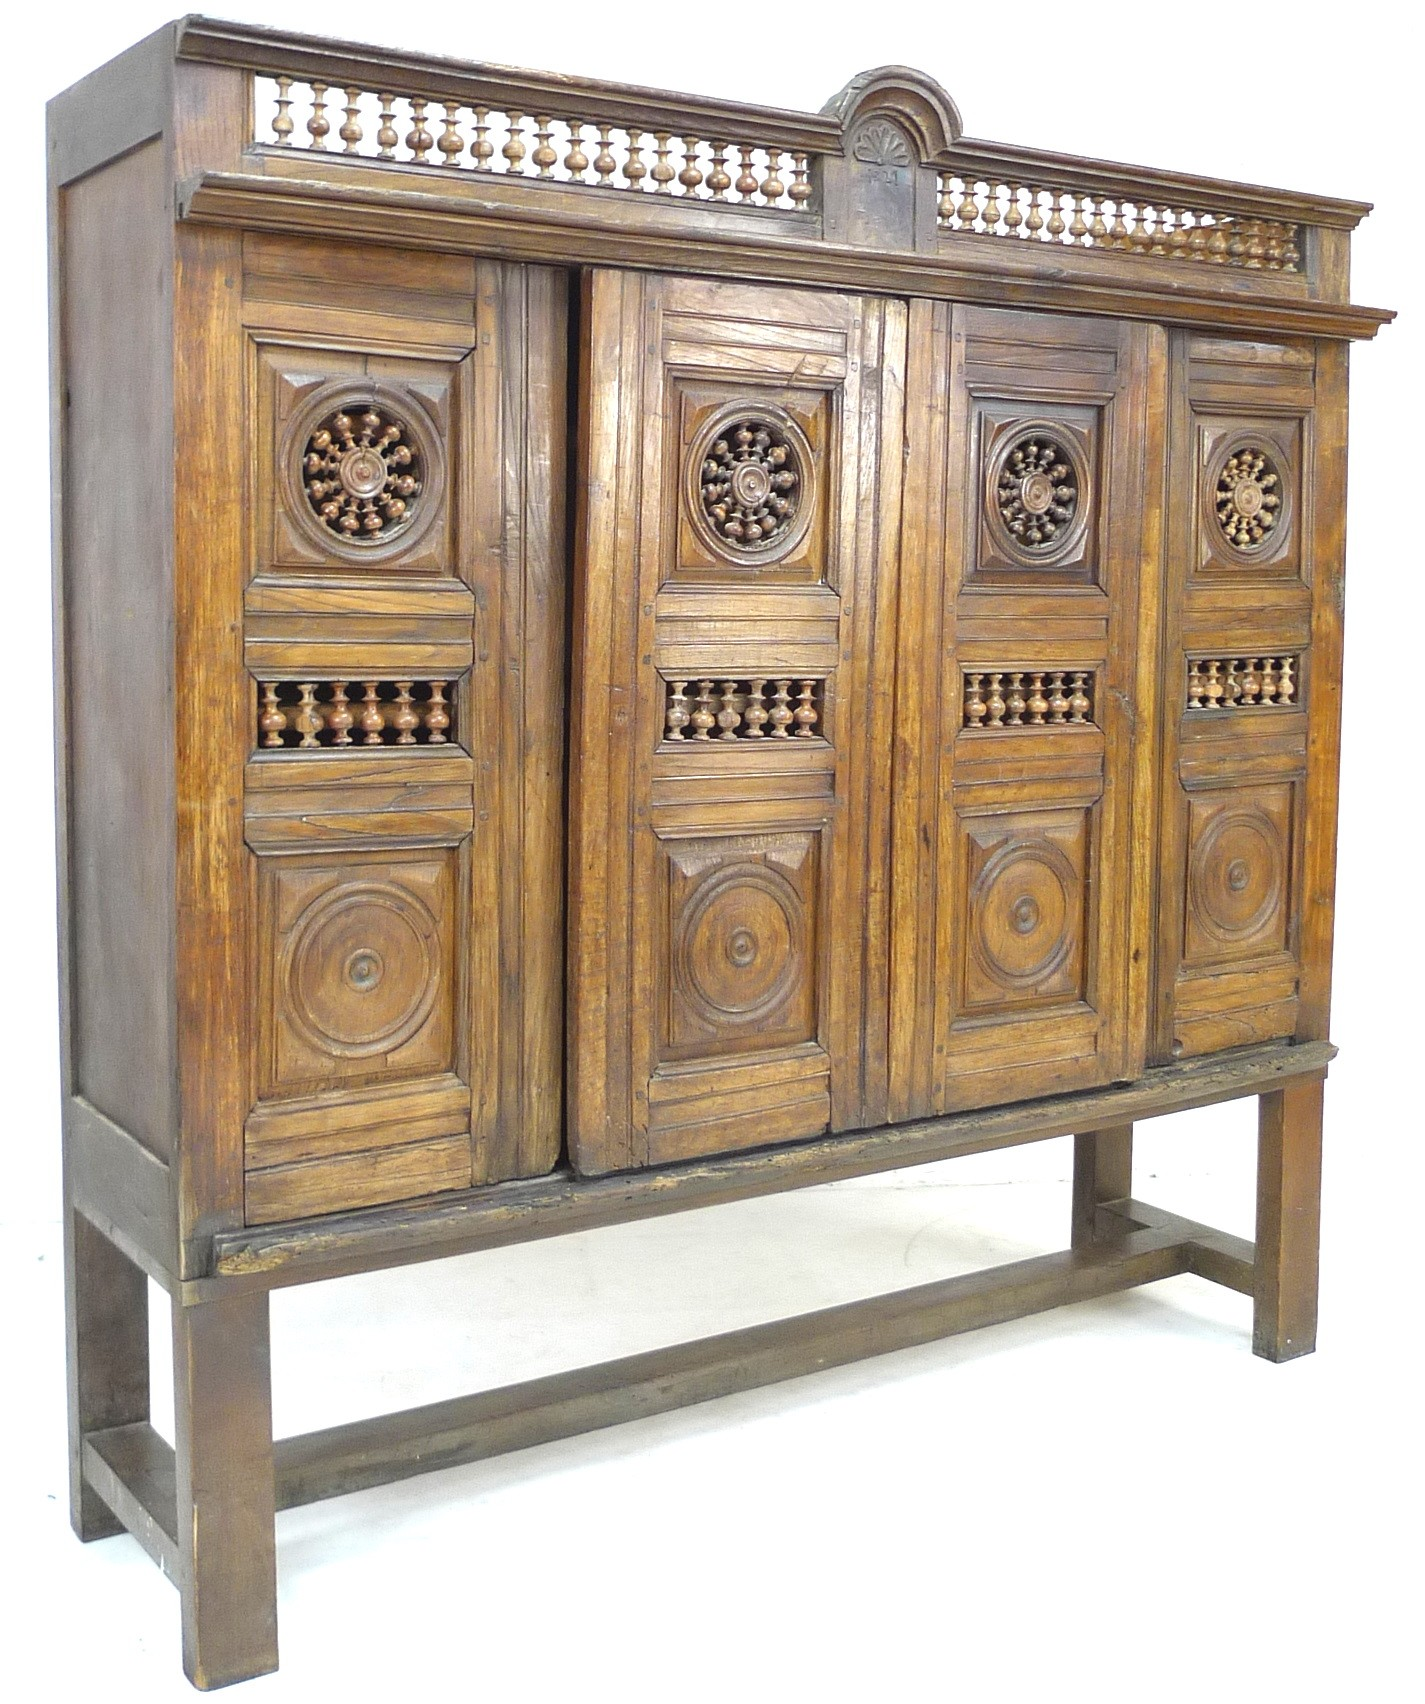 A French oak cupboard, 19th century and later, with carved and baluster detail, bears carved date '